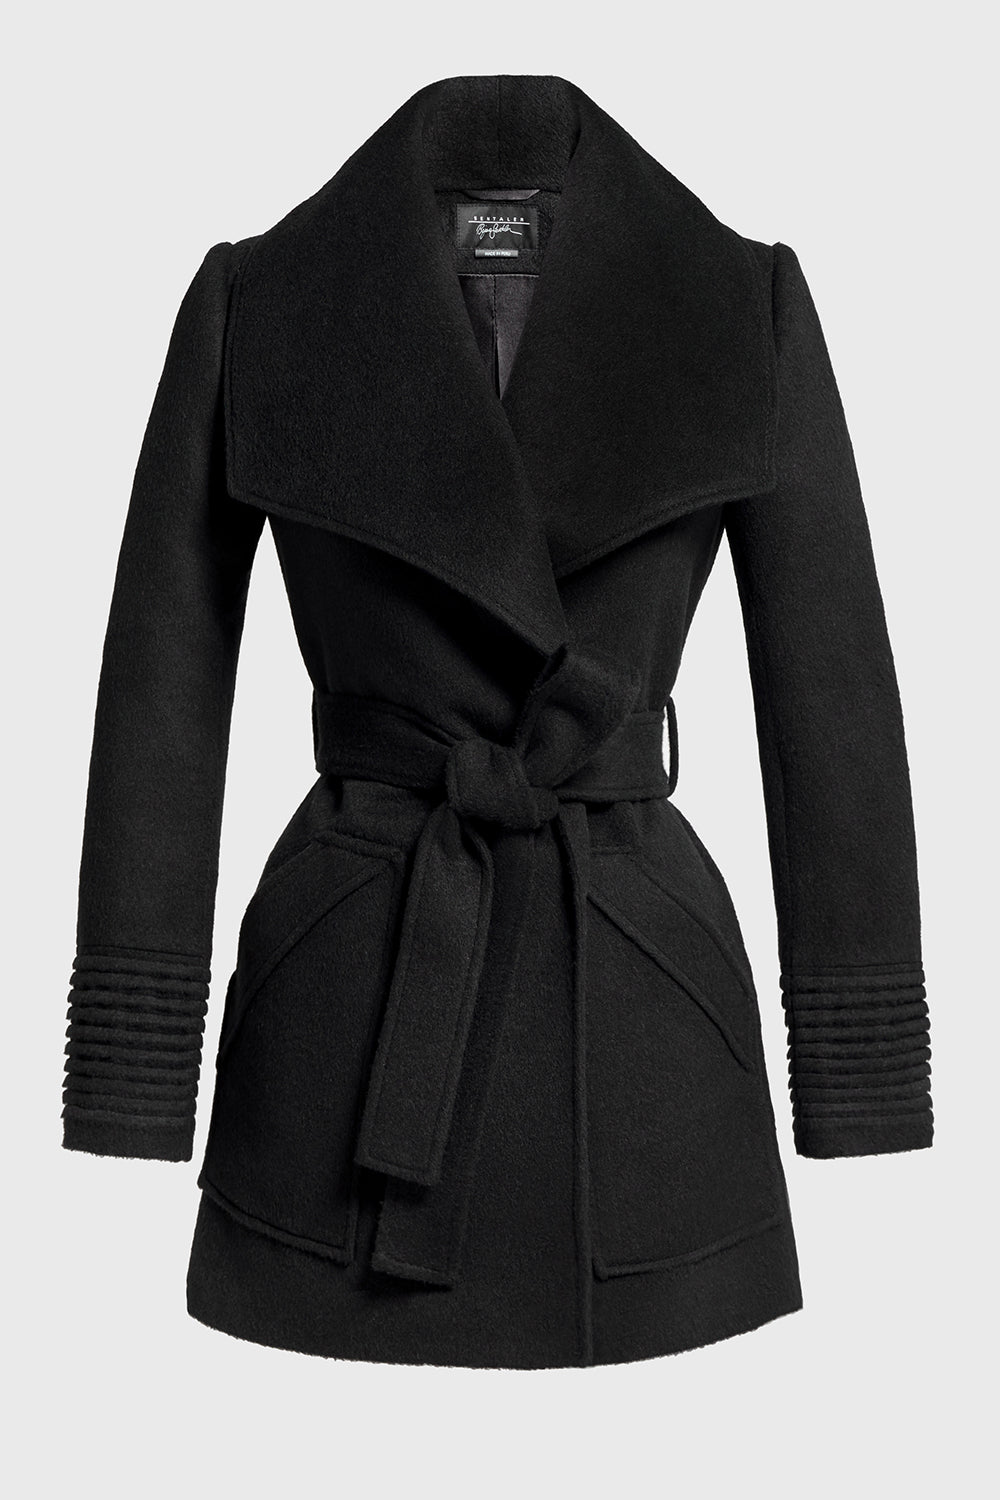 Sentaler Cropped Wide Collar Wrap Coat featured in Baby Alpaca and available in Black. Seen off model.